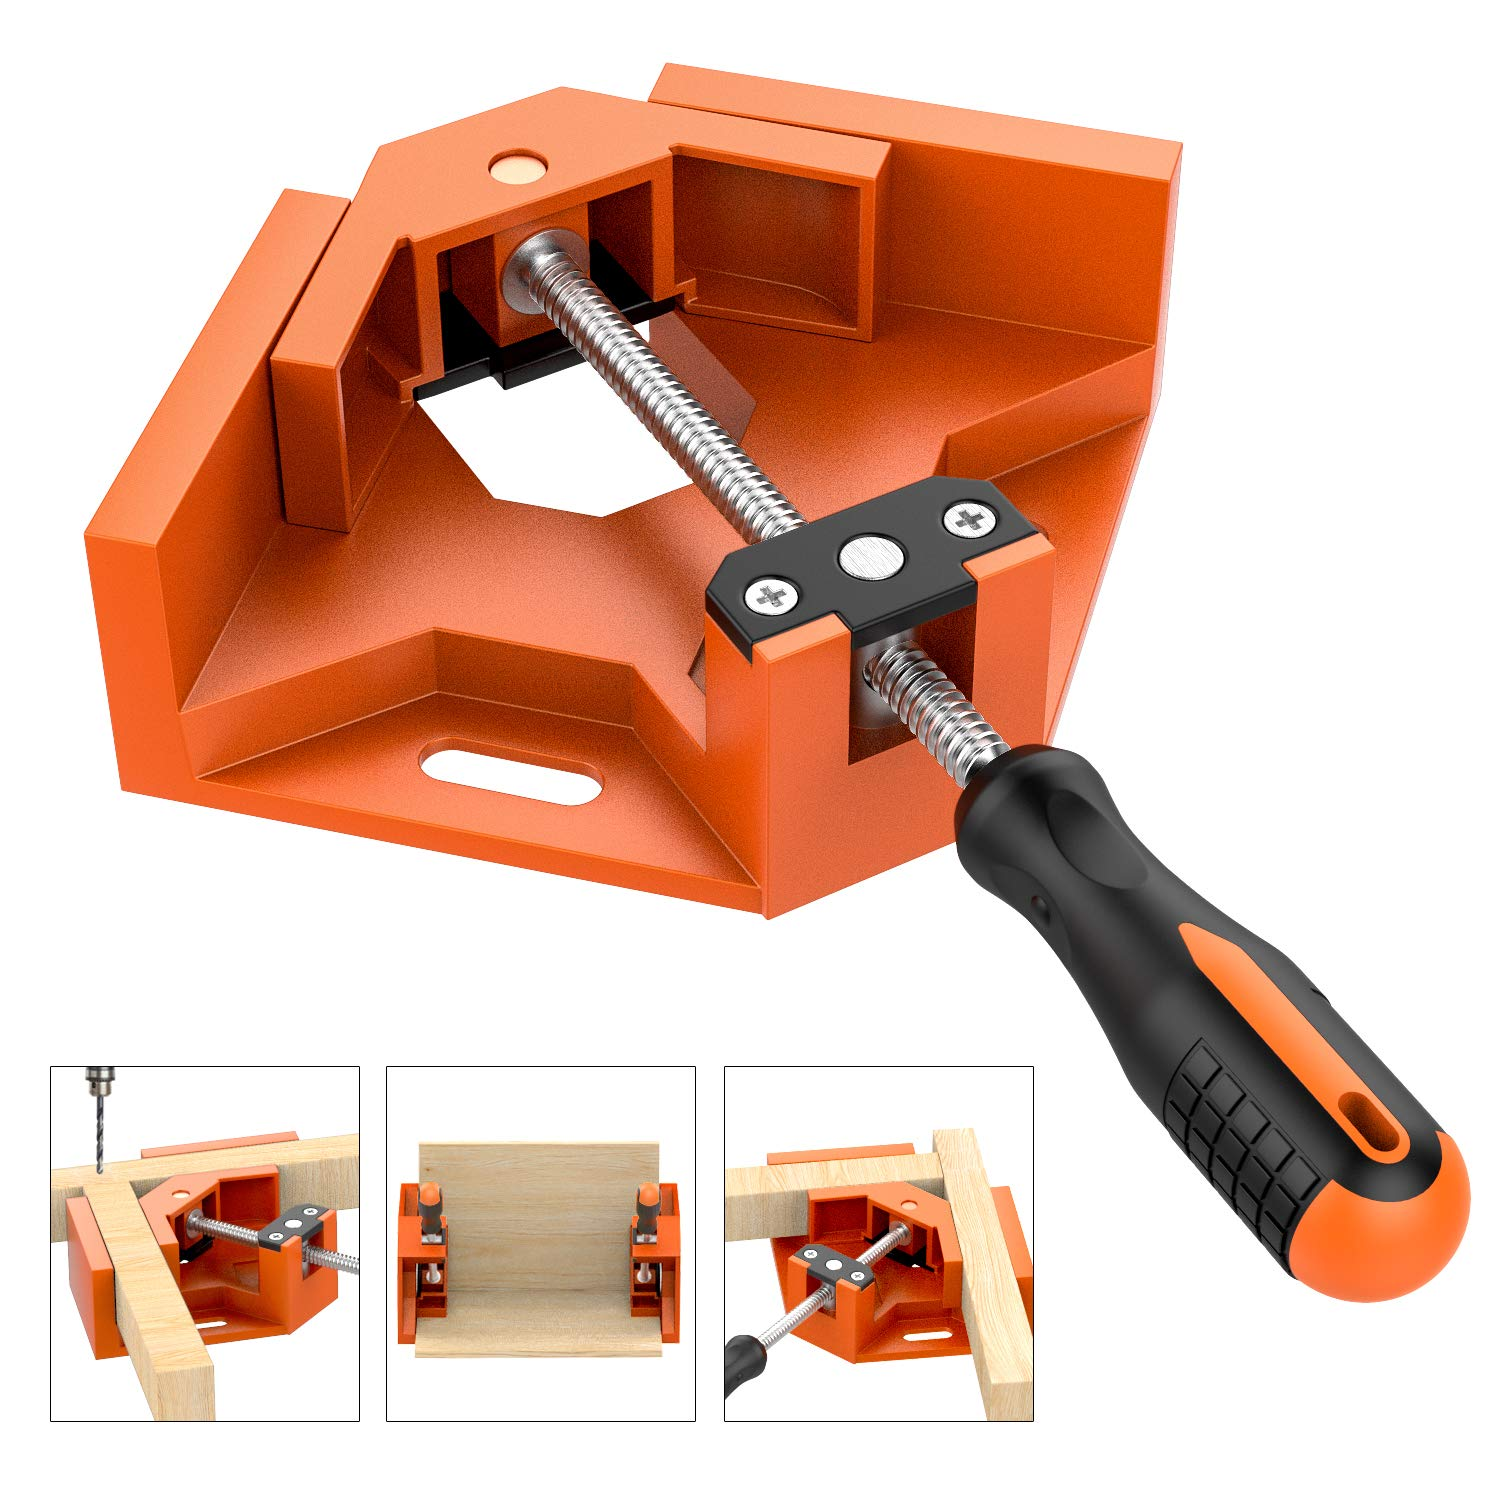 Right Angle Clamp, Housolution Single Handle 90° Aluminum Alloy Corner Clamp, Right Angle Clip Clamp Tool Woodworking Photo Frame Vise Holder with Adjustable Swing Jaw - Orange